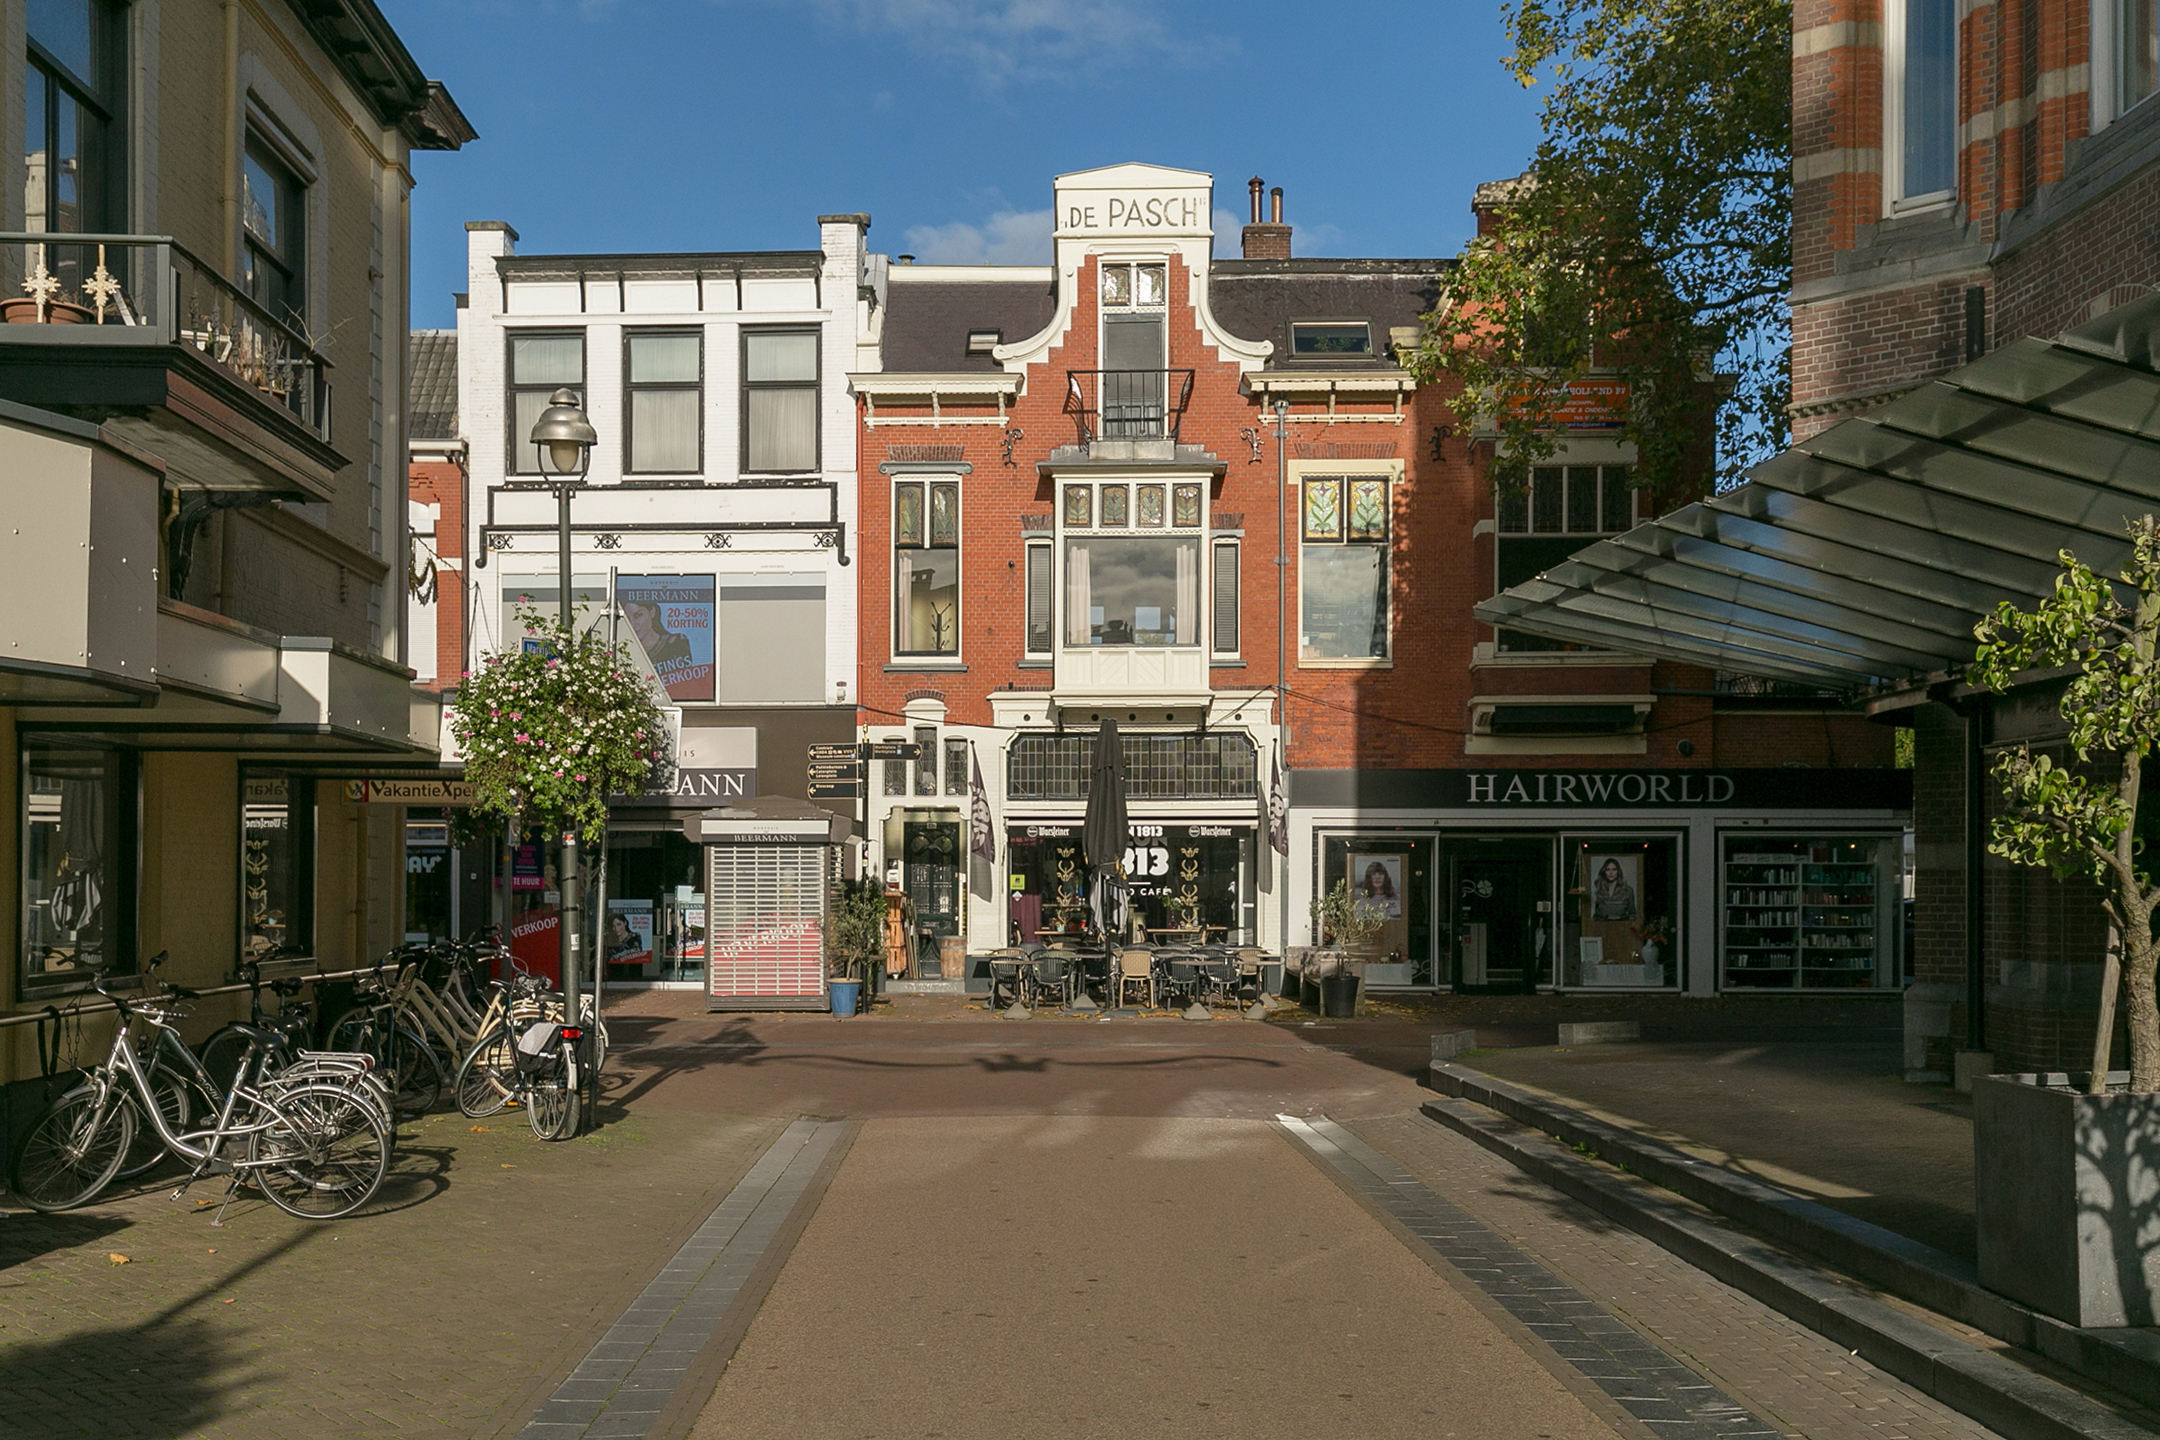 Deventerstraat